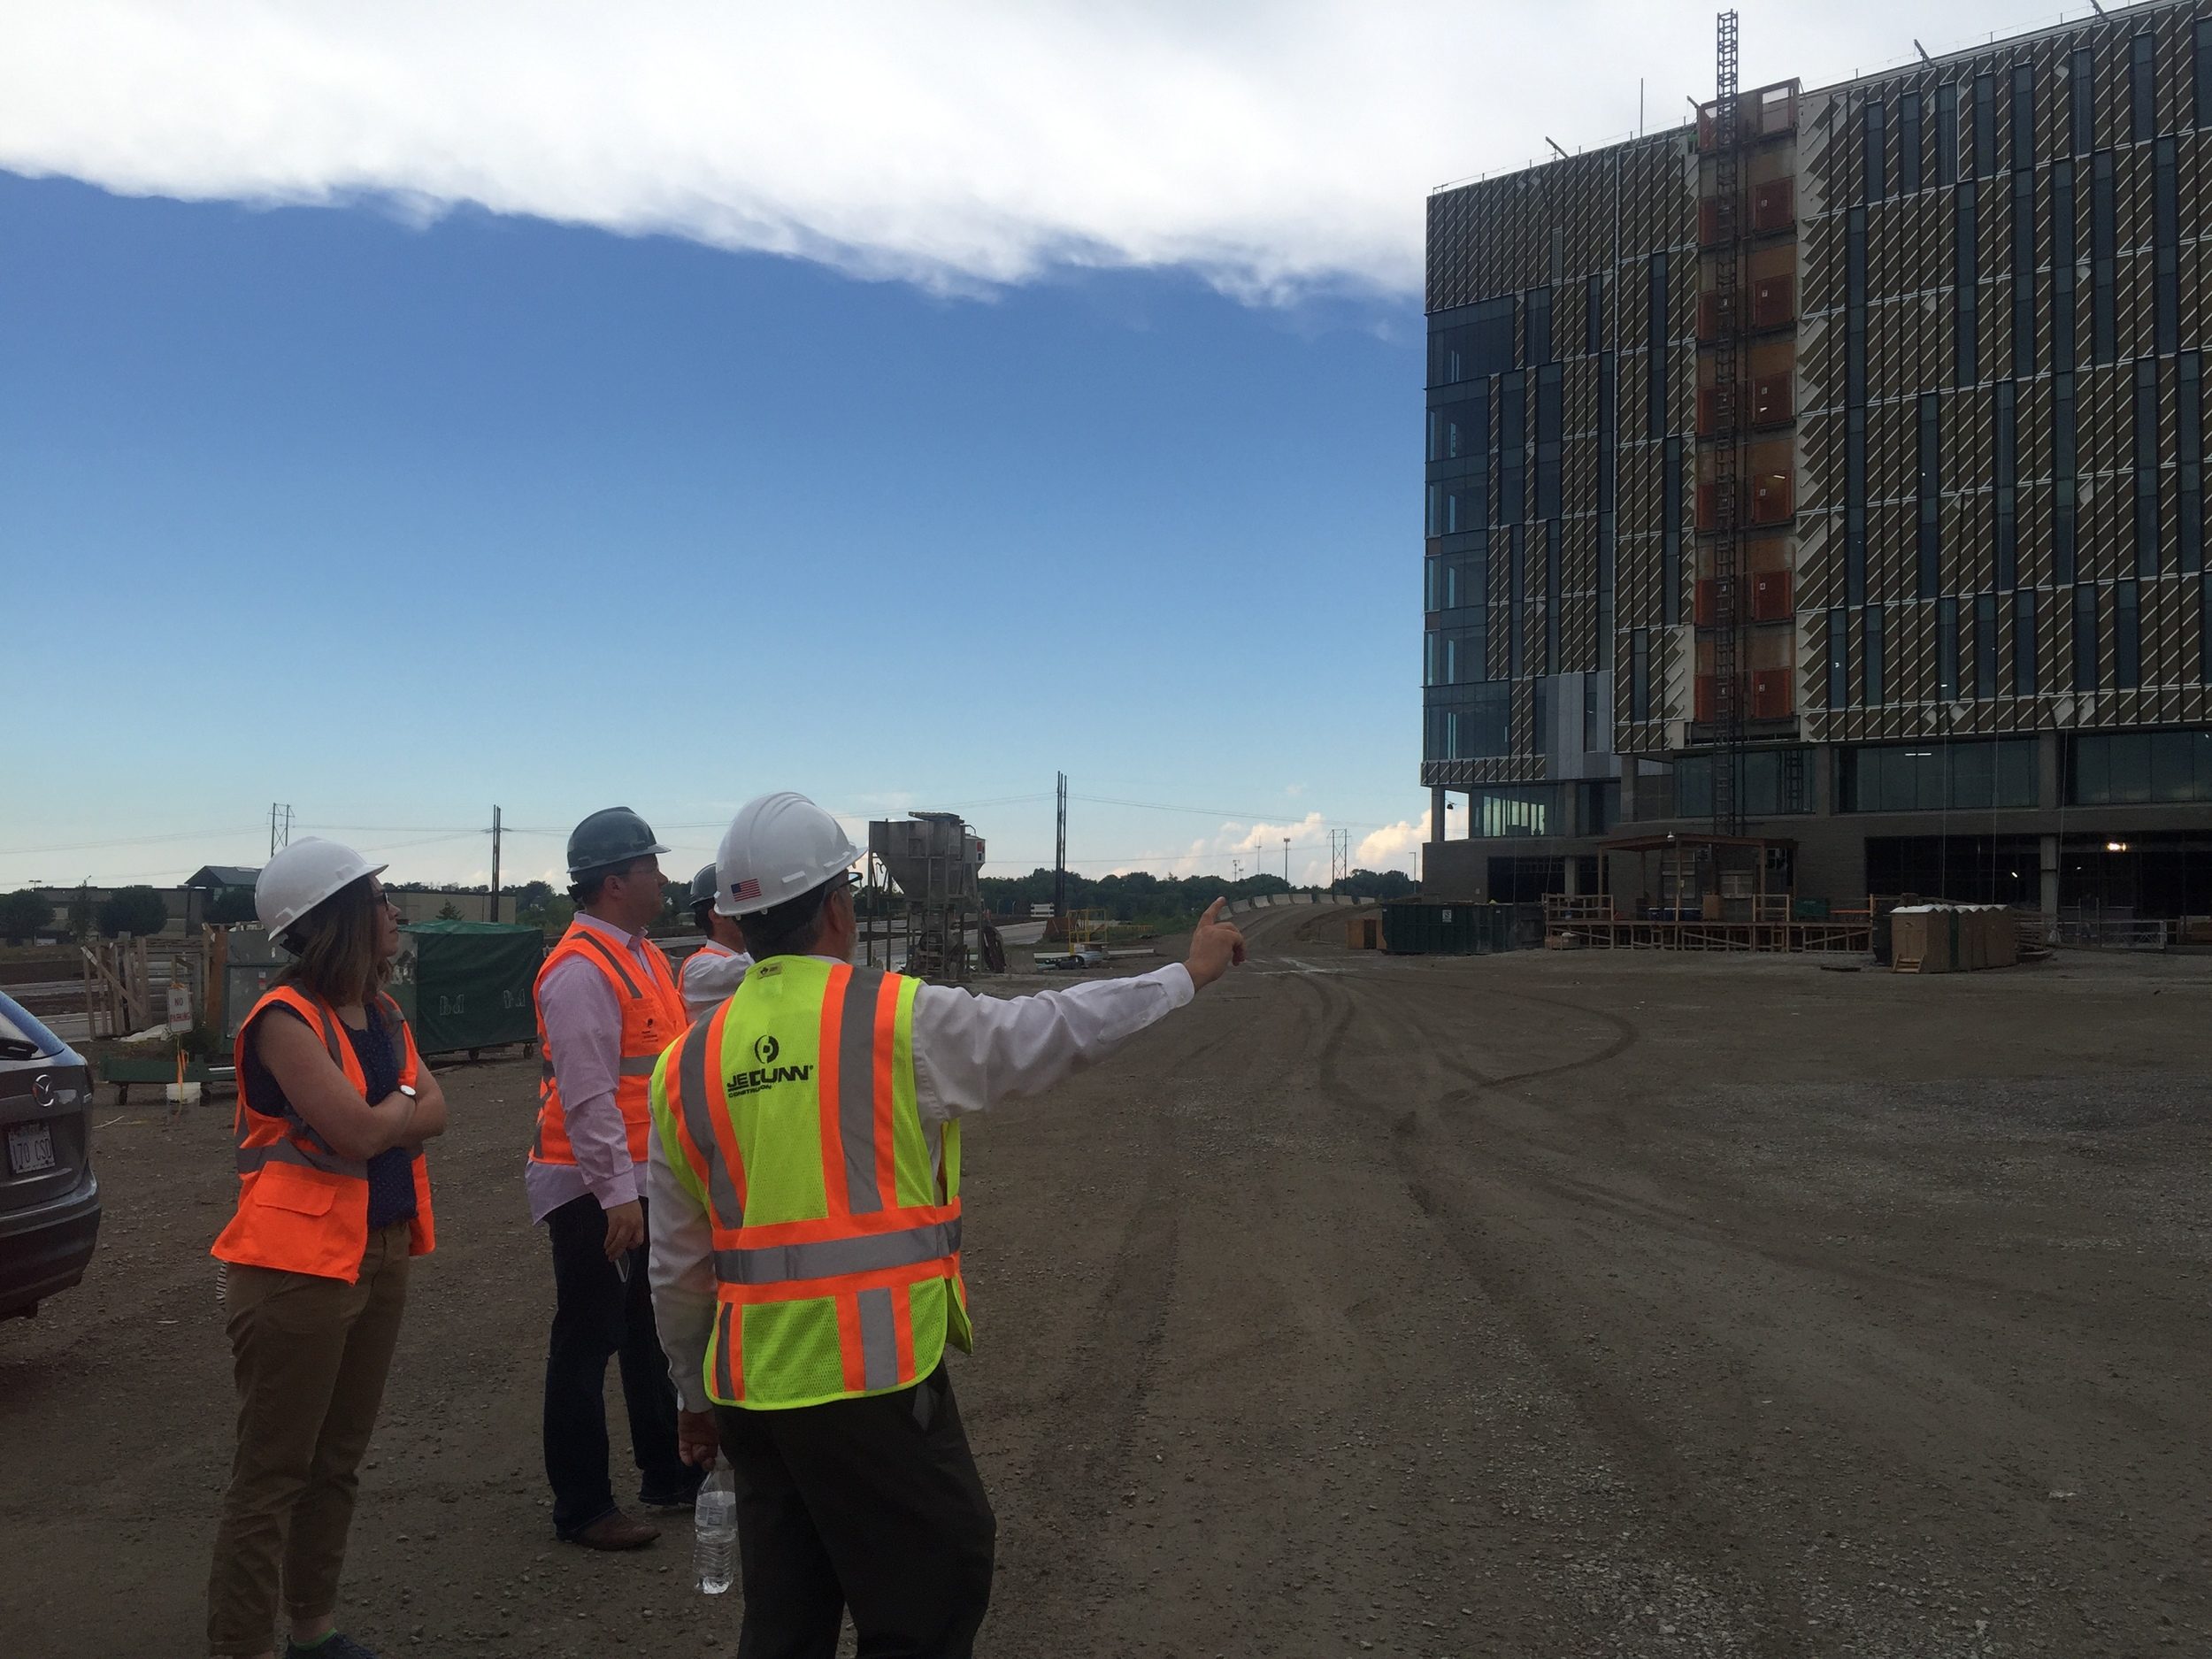 ULI Mentorship Forum take an exclusive hard-hat tour of the new Cerner campus. Photo courtesy of Russell Pearson.